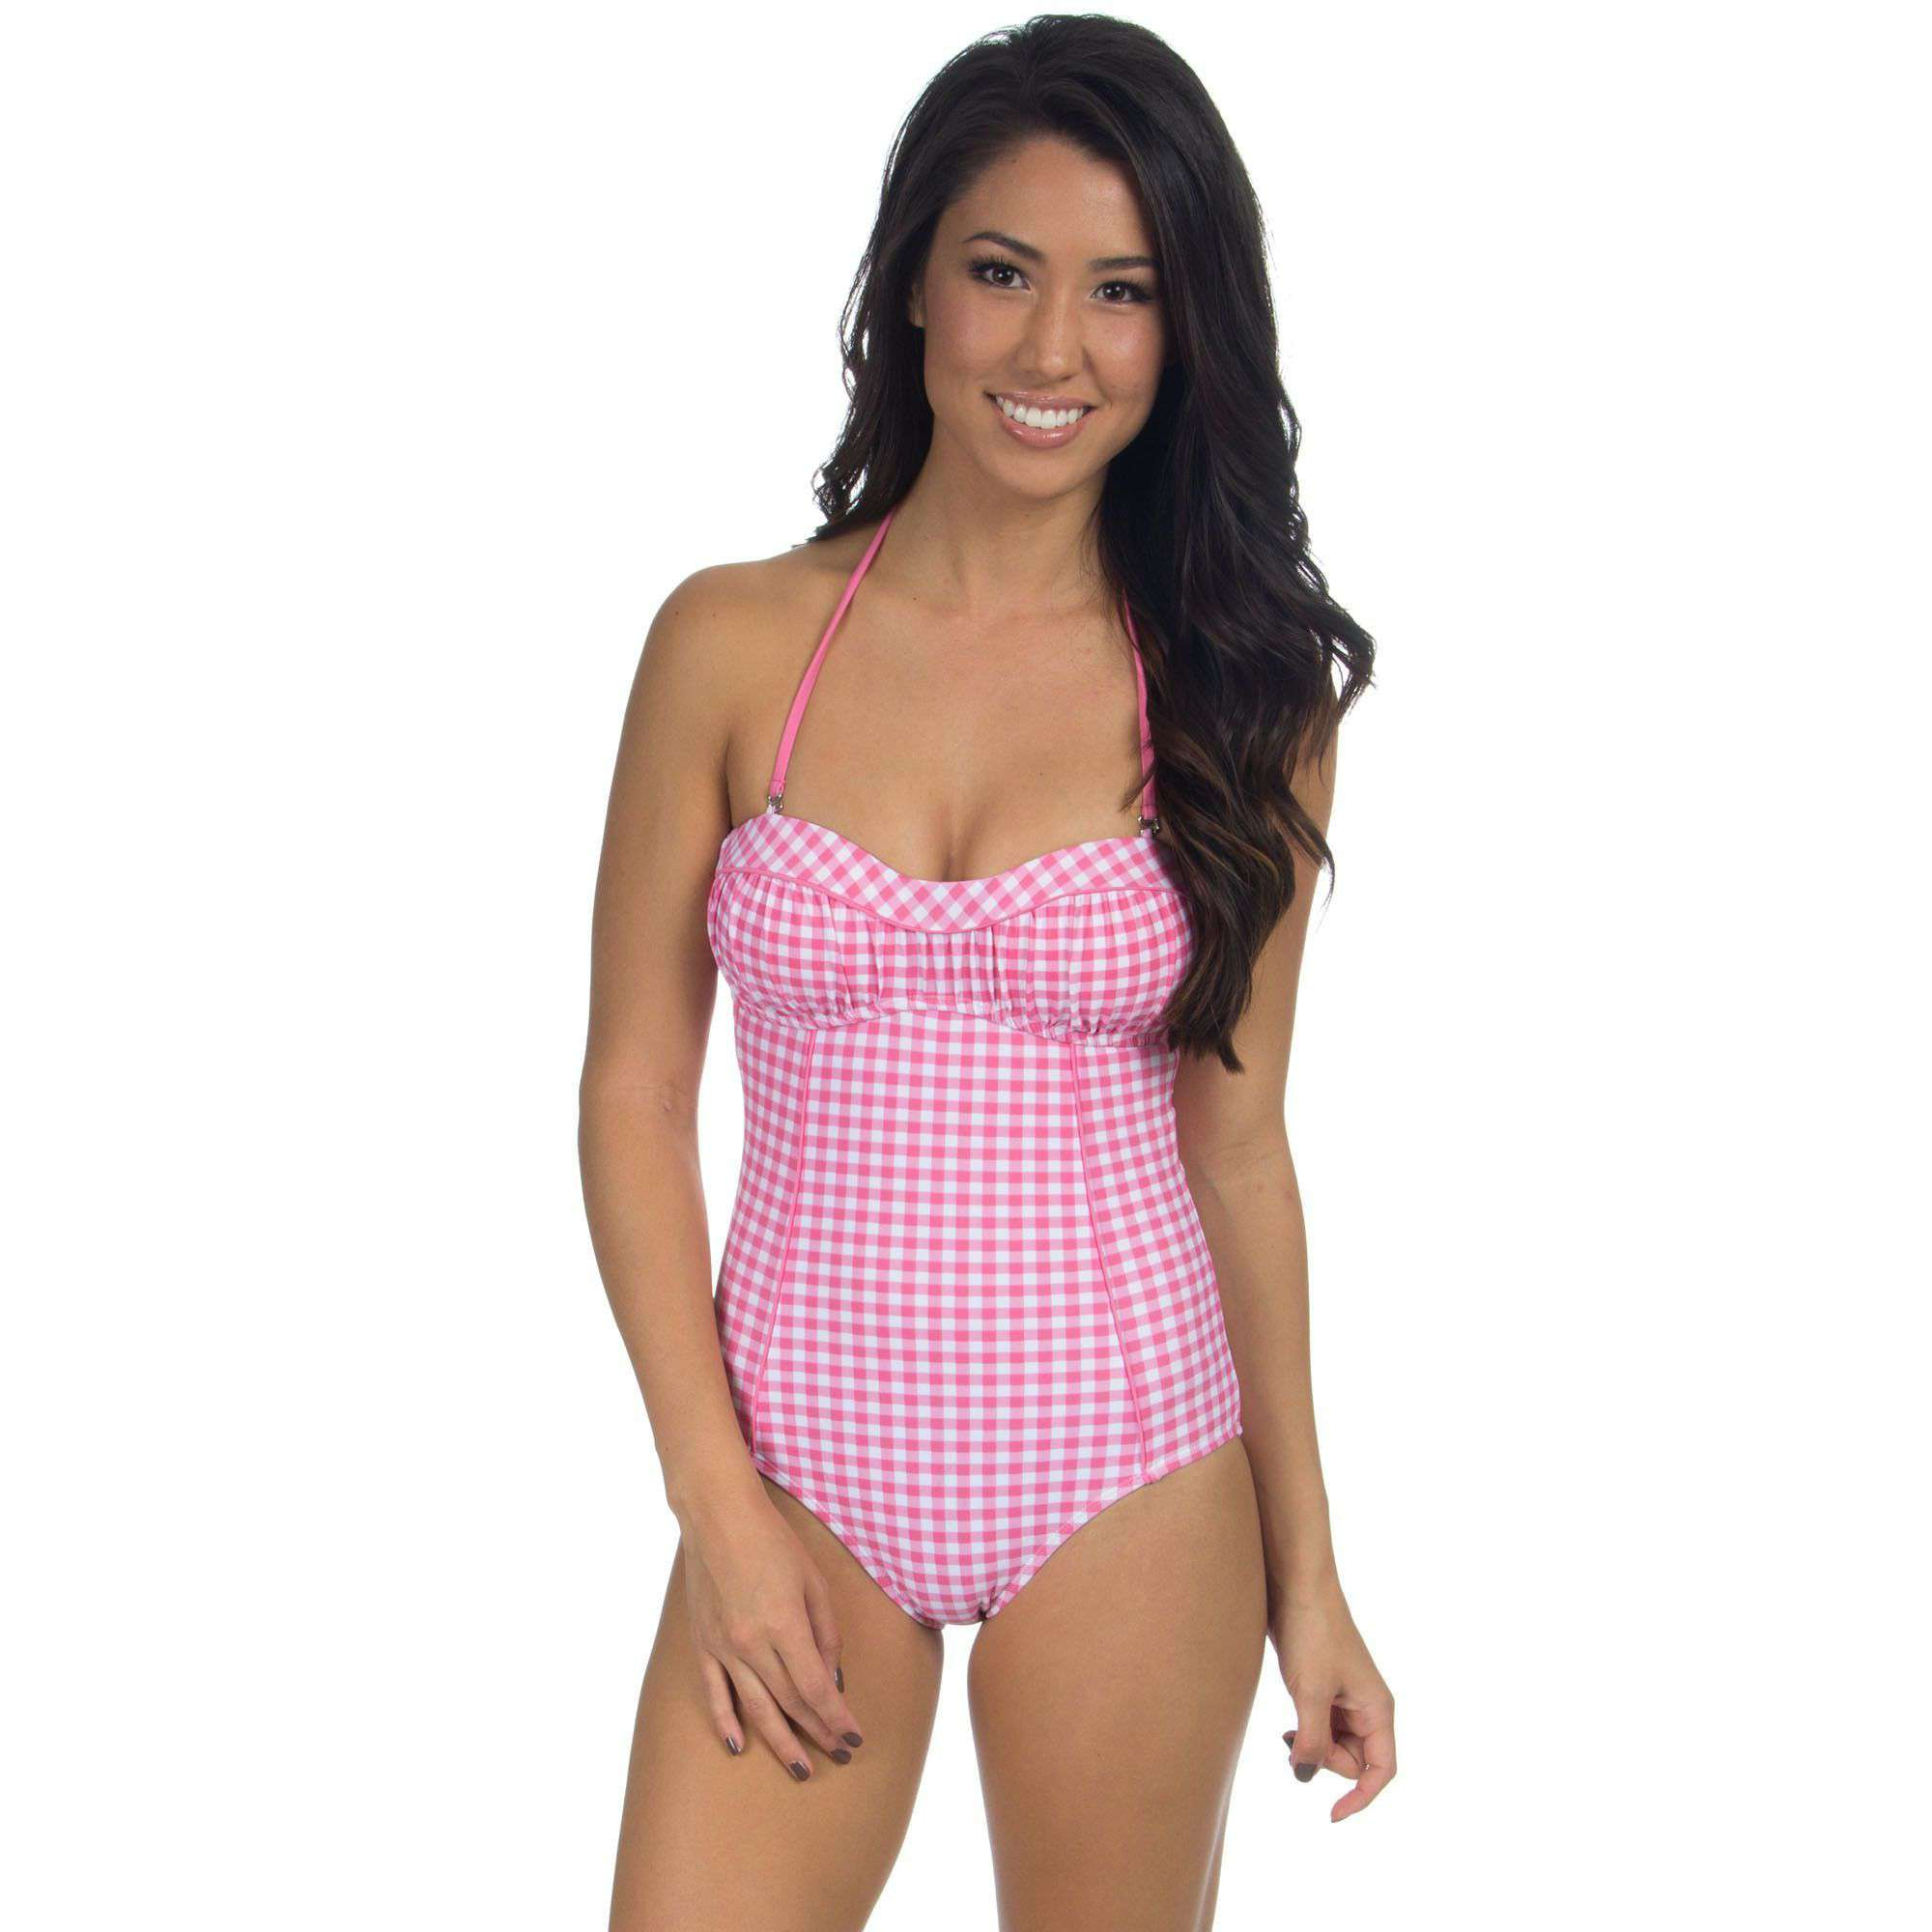 09822d2b03 Lauren James Gingham One Piece Bandeau Swimsuit in Pink – Country Club Prep